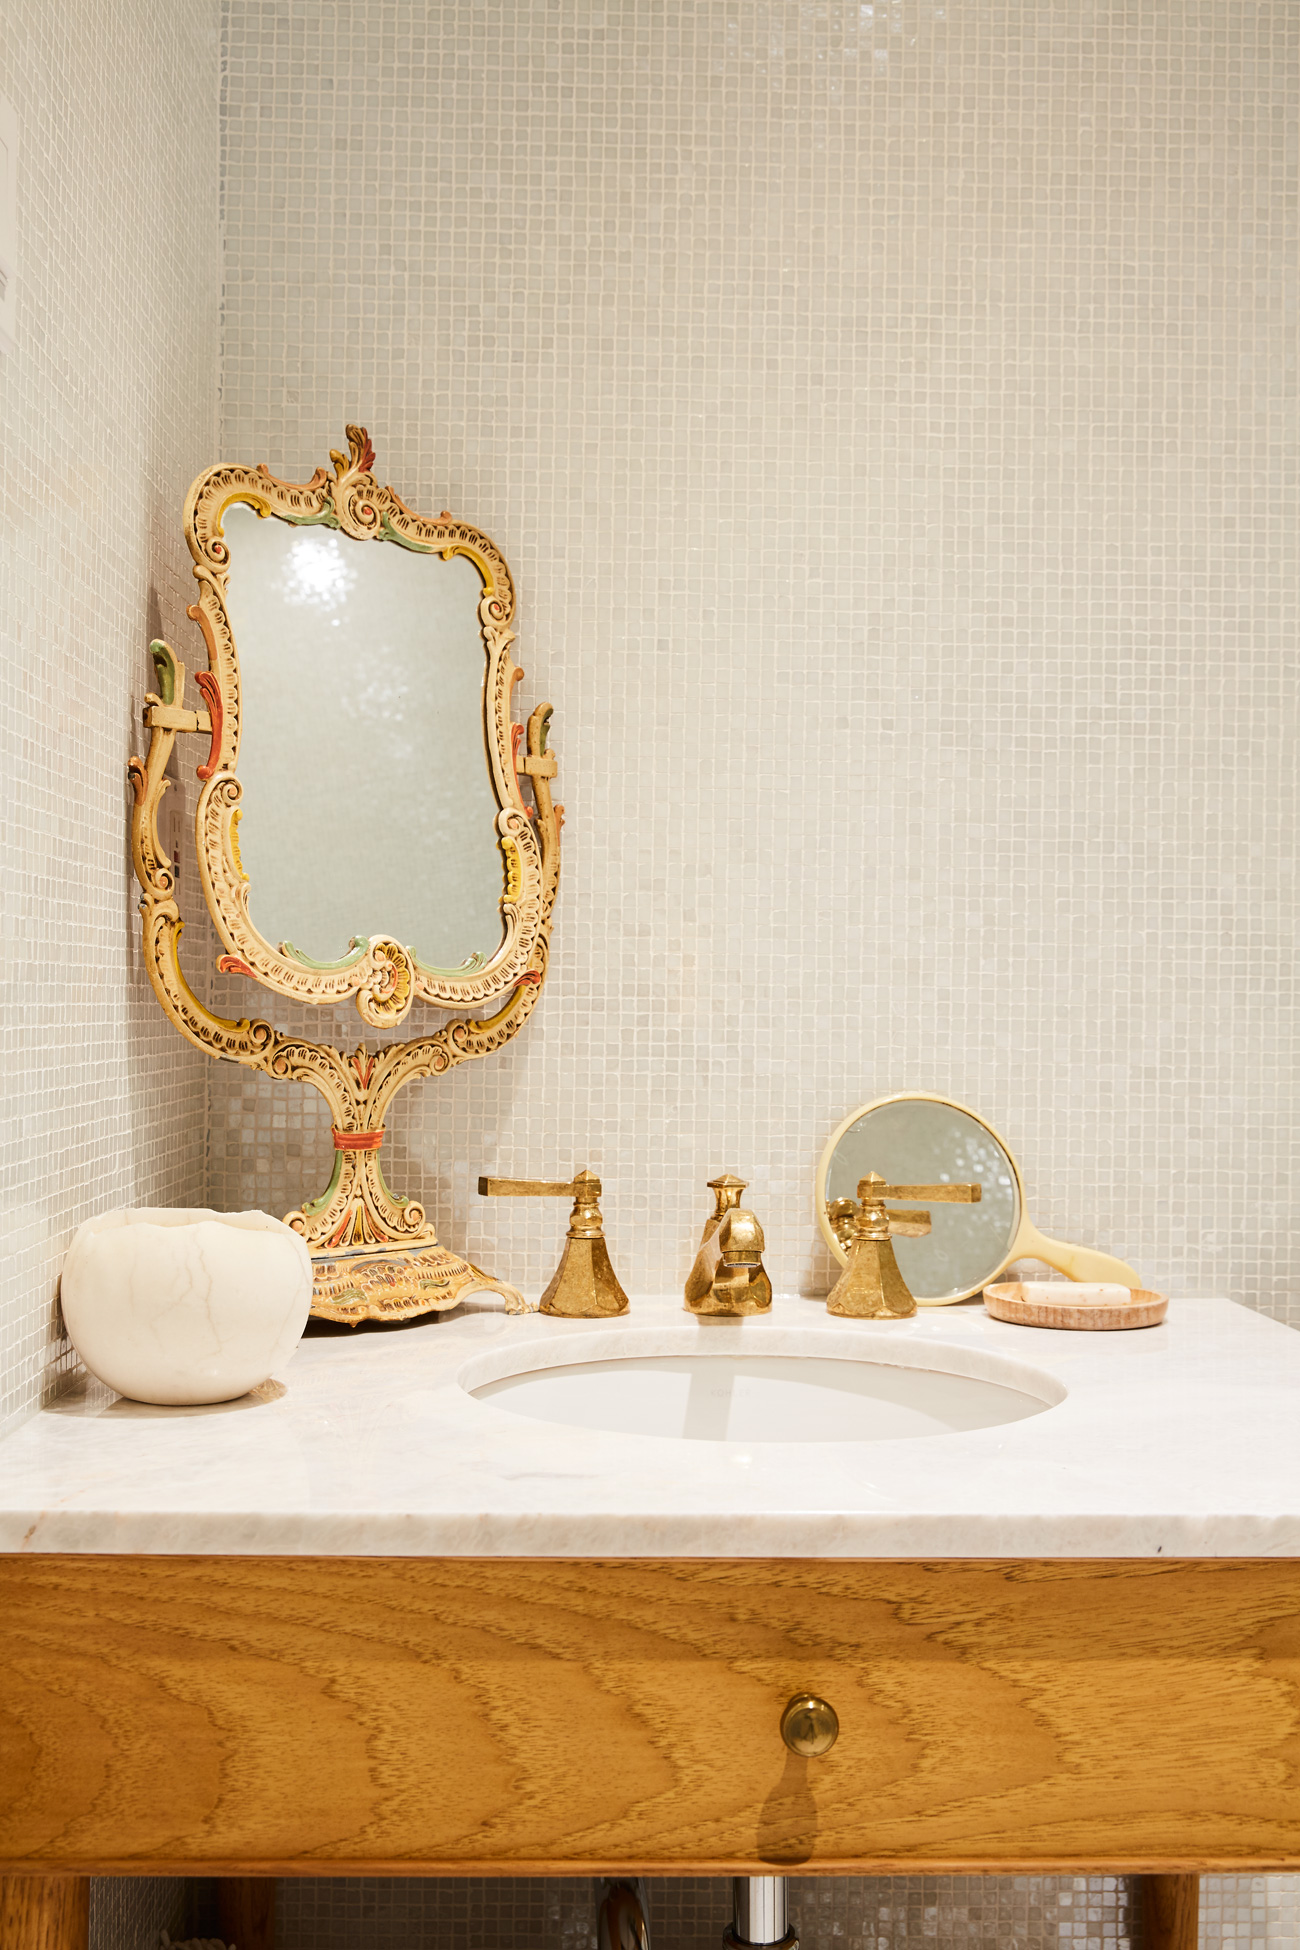 In the guest bath, Ginger paired a mosaic by Ceragres with porcelain flooring from Stone Tile. Vintage mirror; faucet from Roman Bath.